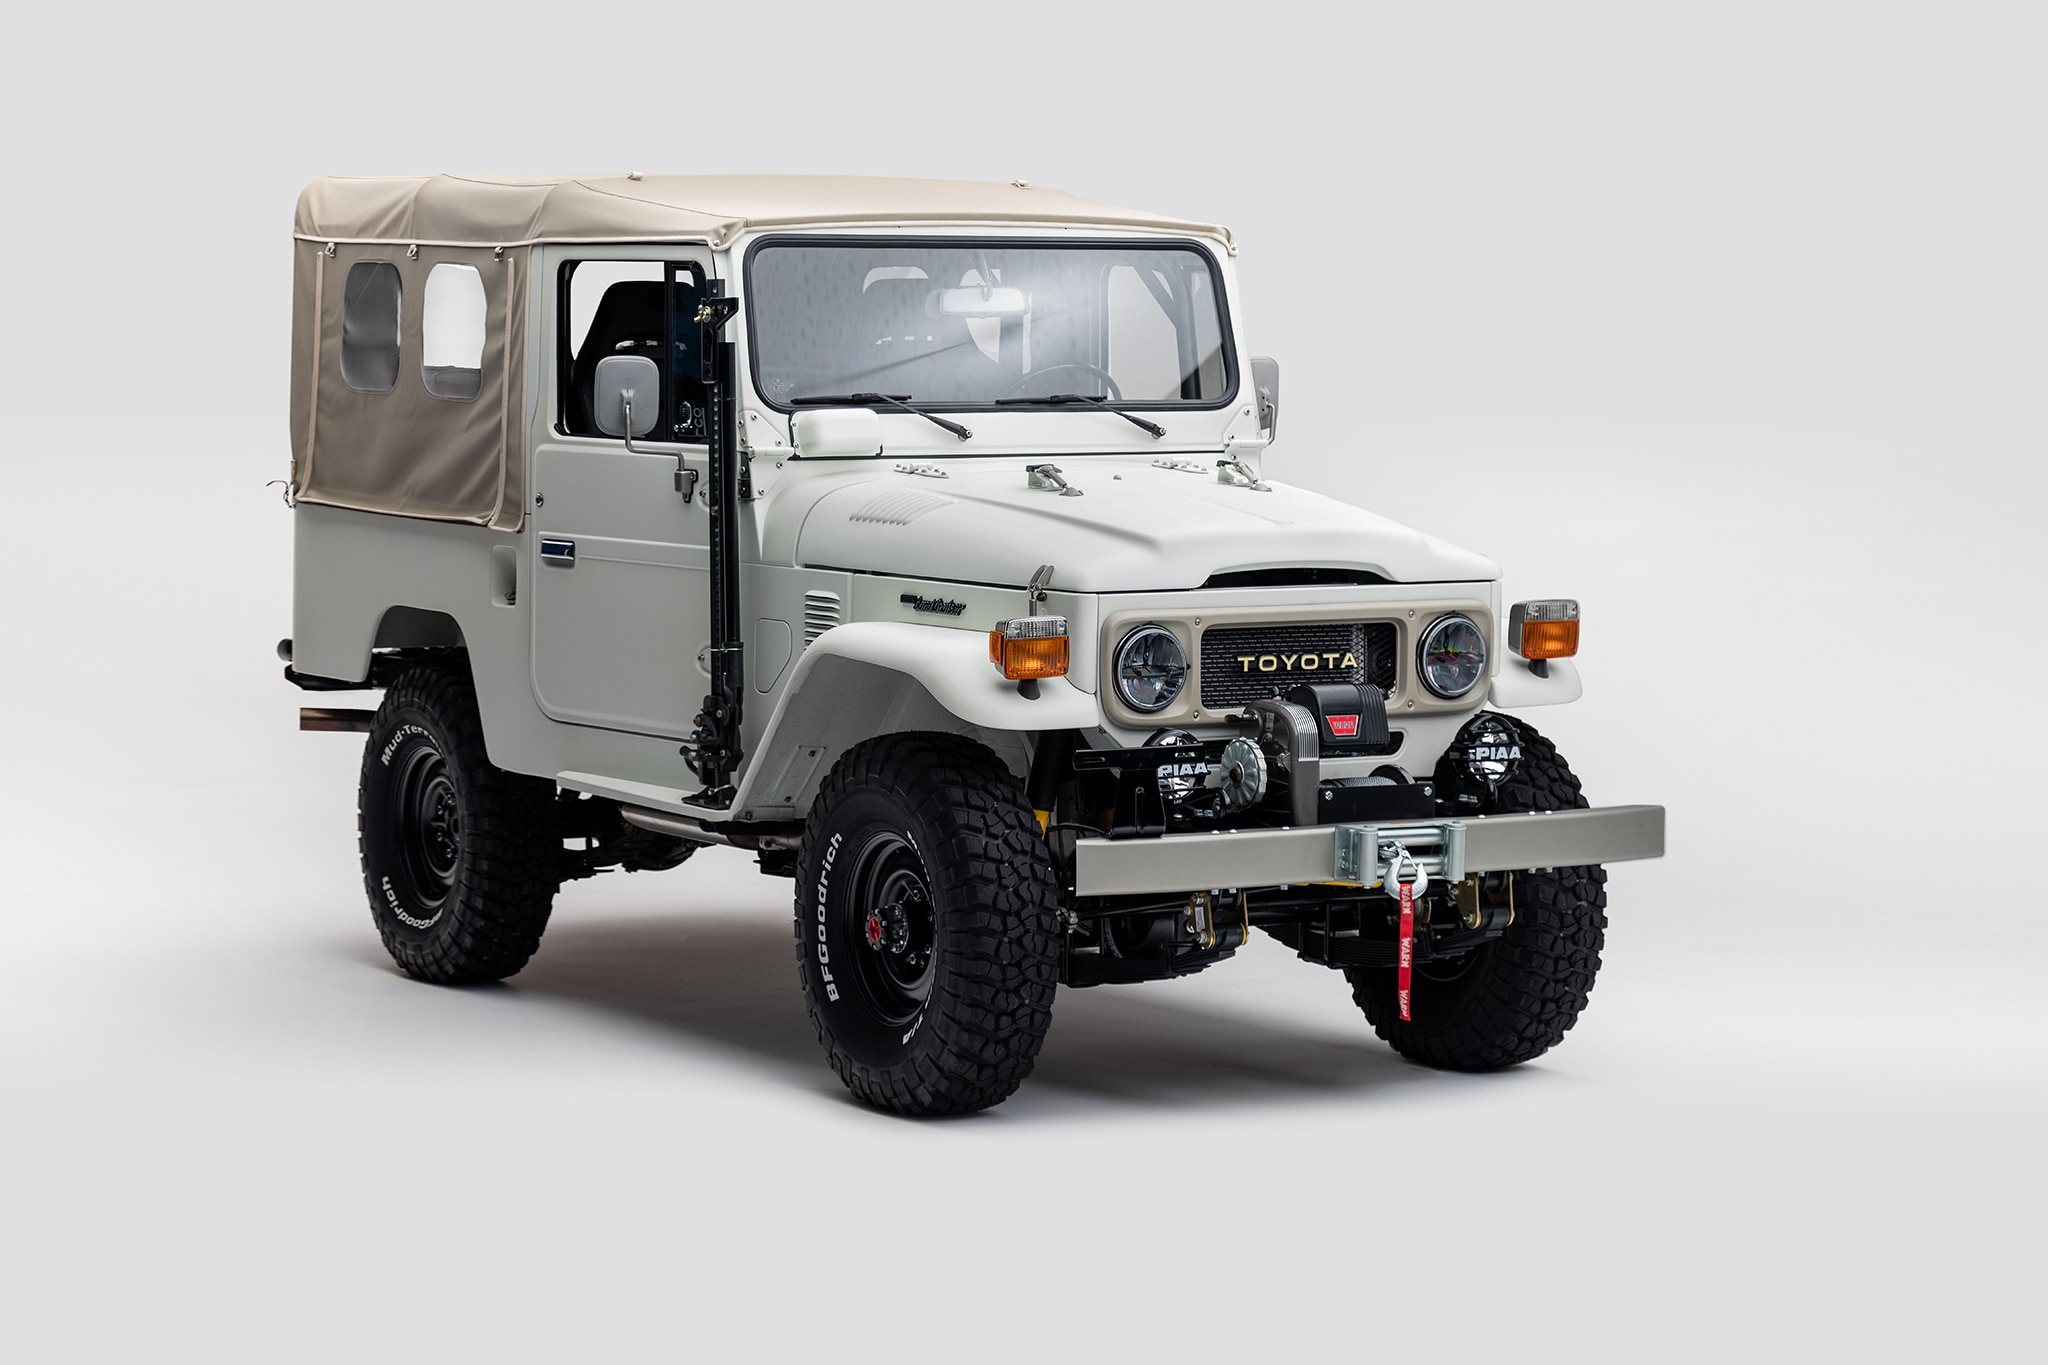 The FJ Company Land Cruiser FJ43 The Aspen Project Front Three Quarter 01 1